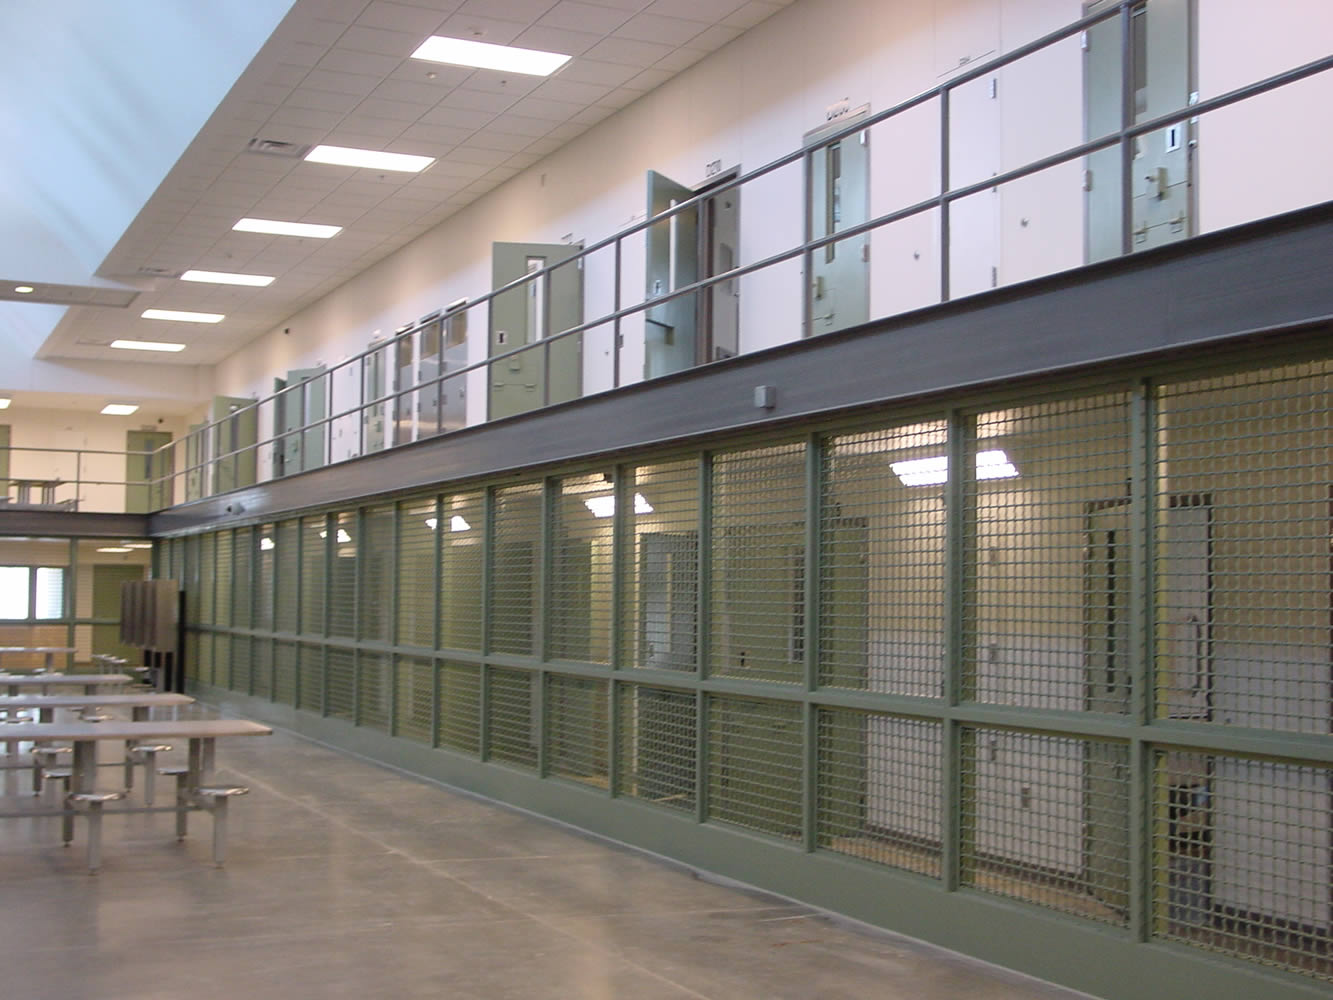 Faribault Cell Block